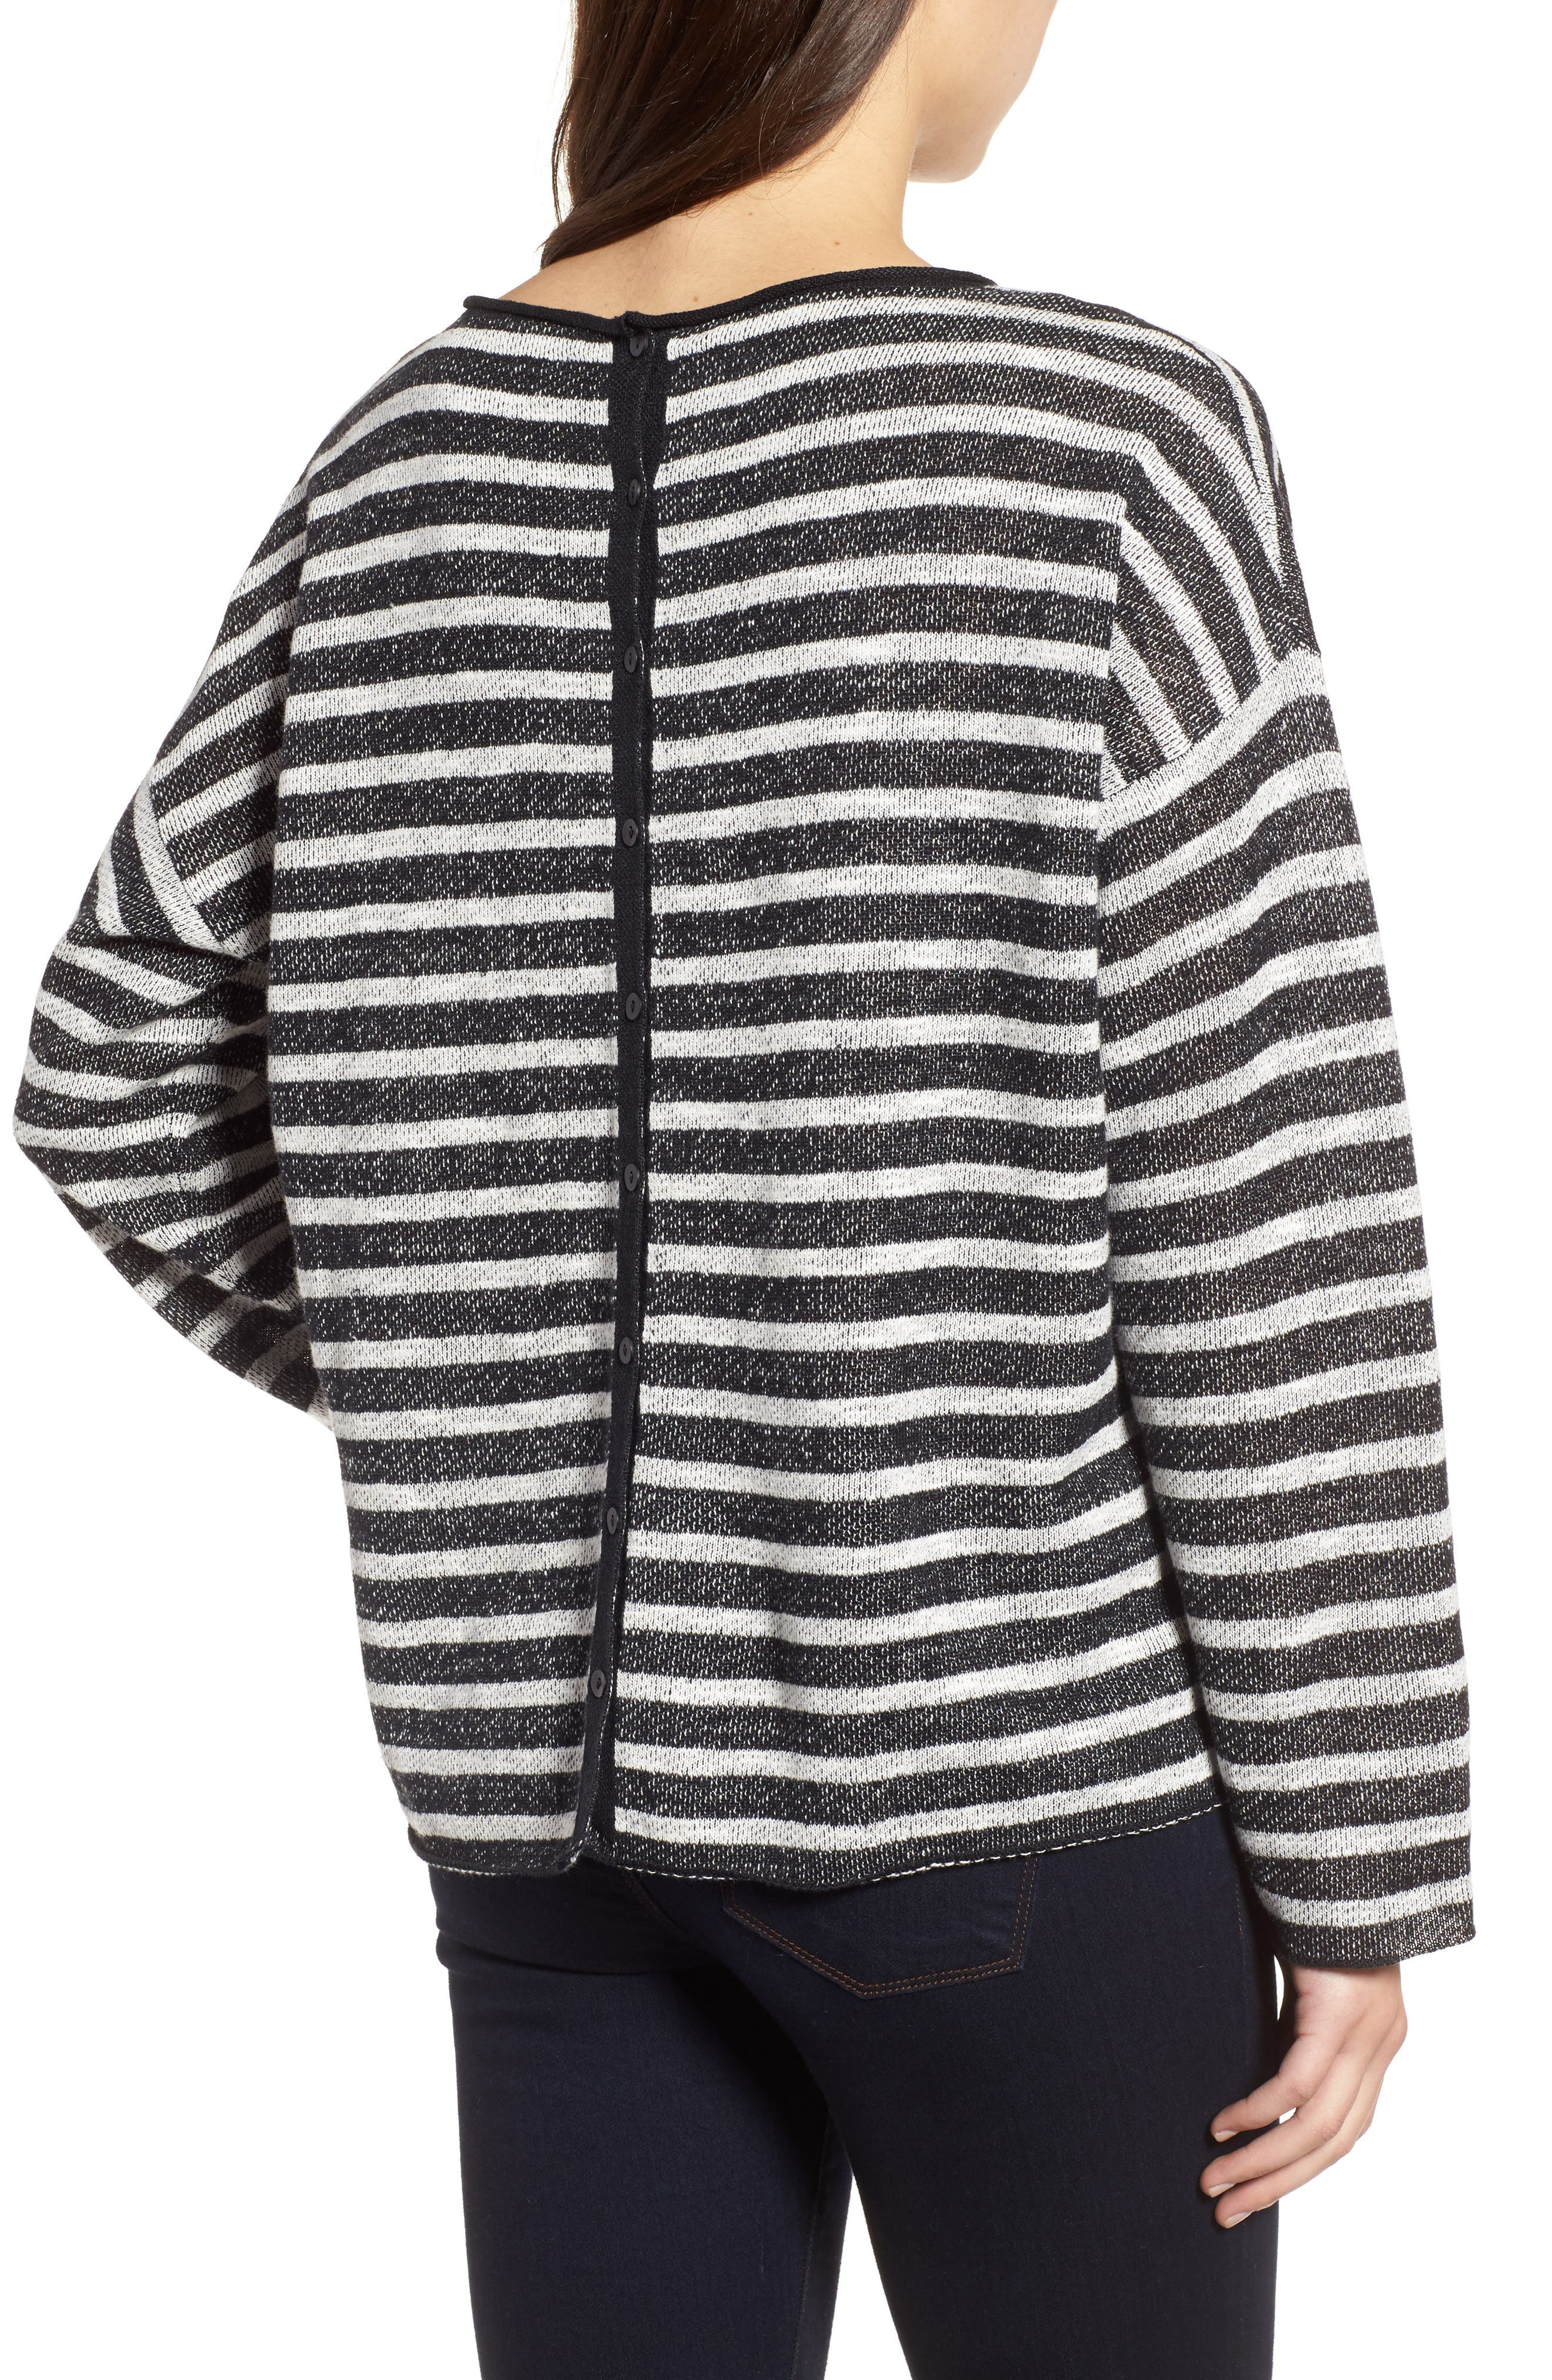 Stripe Organic Linen & Cotton Sweater,                             Alternate thumbnail 3, color,                             Black/ Soft White